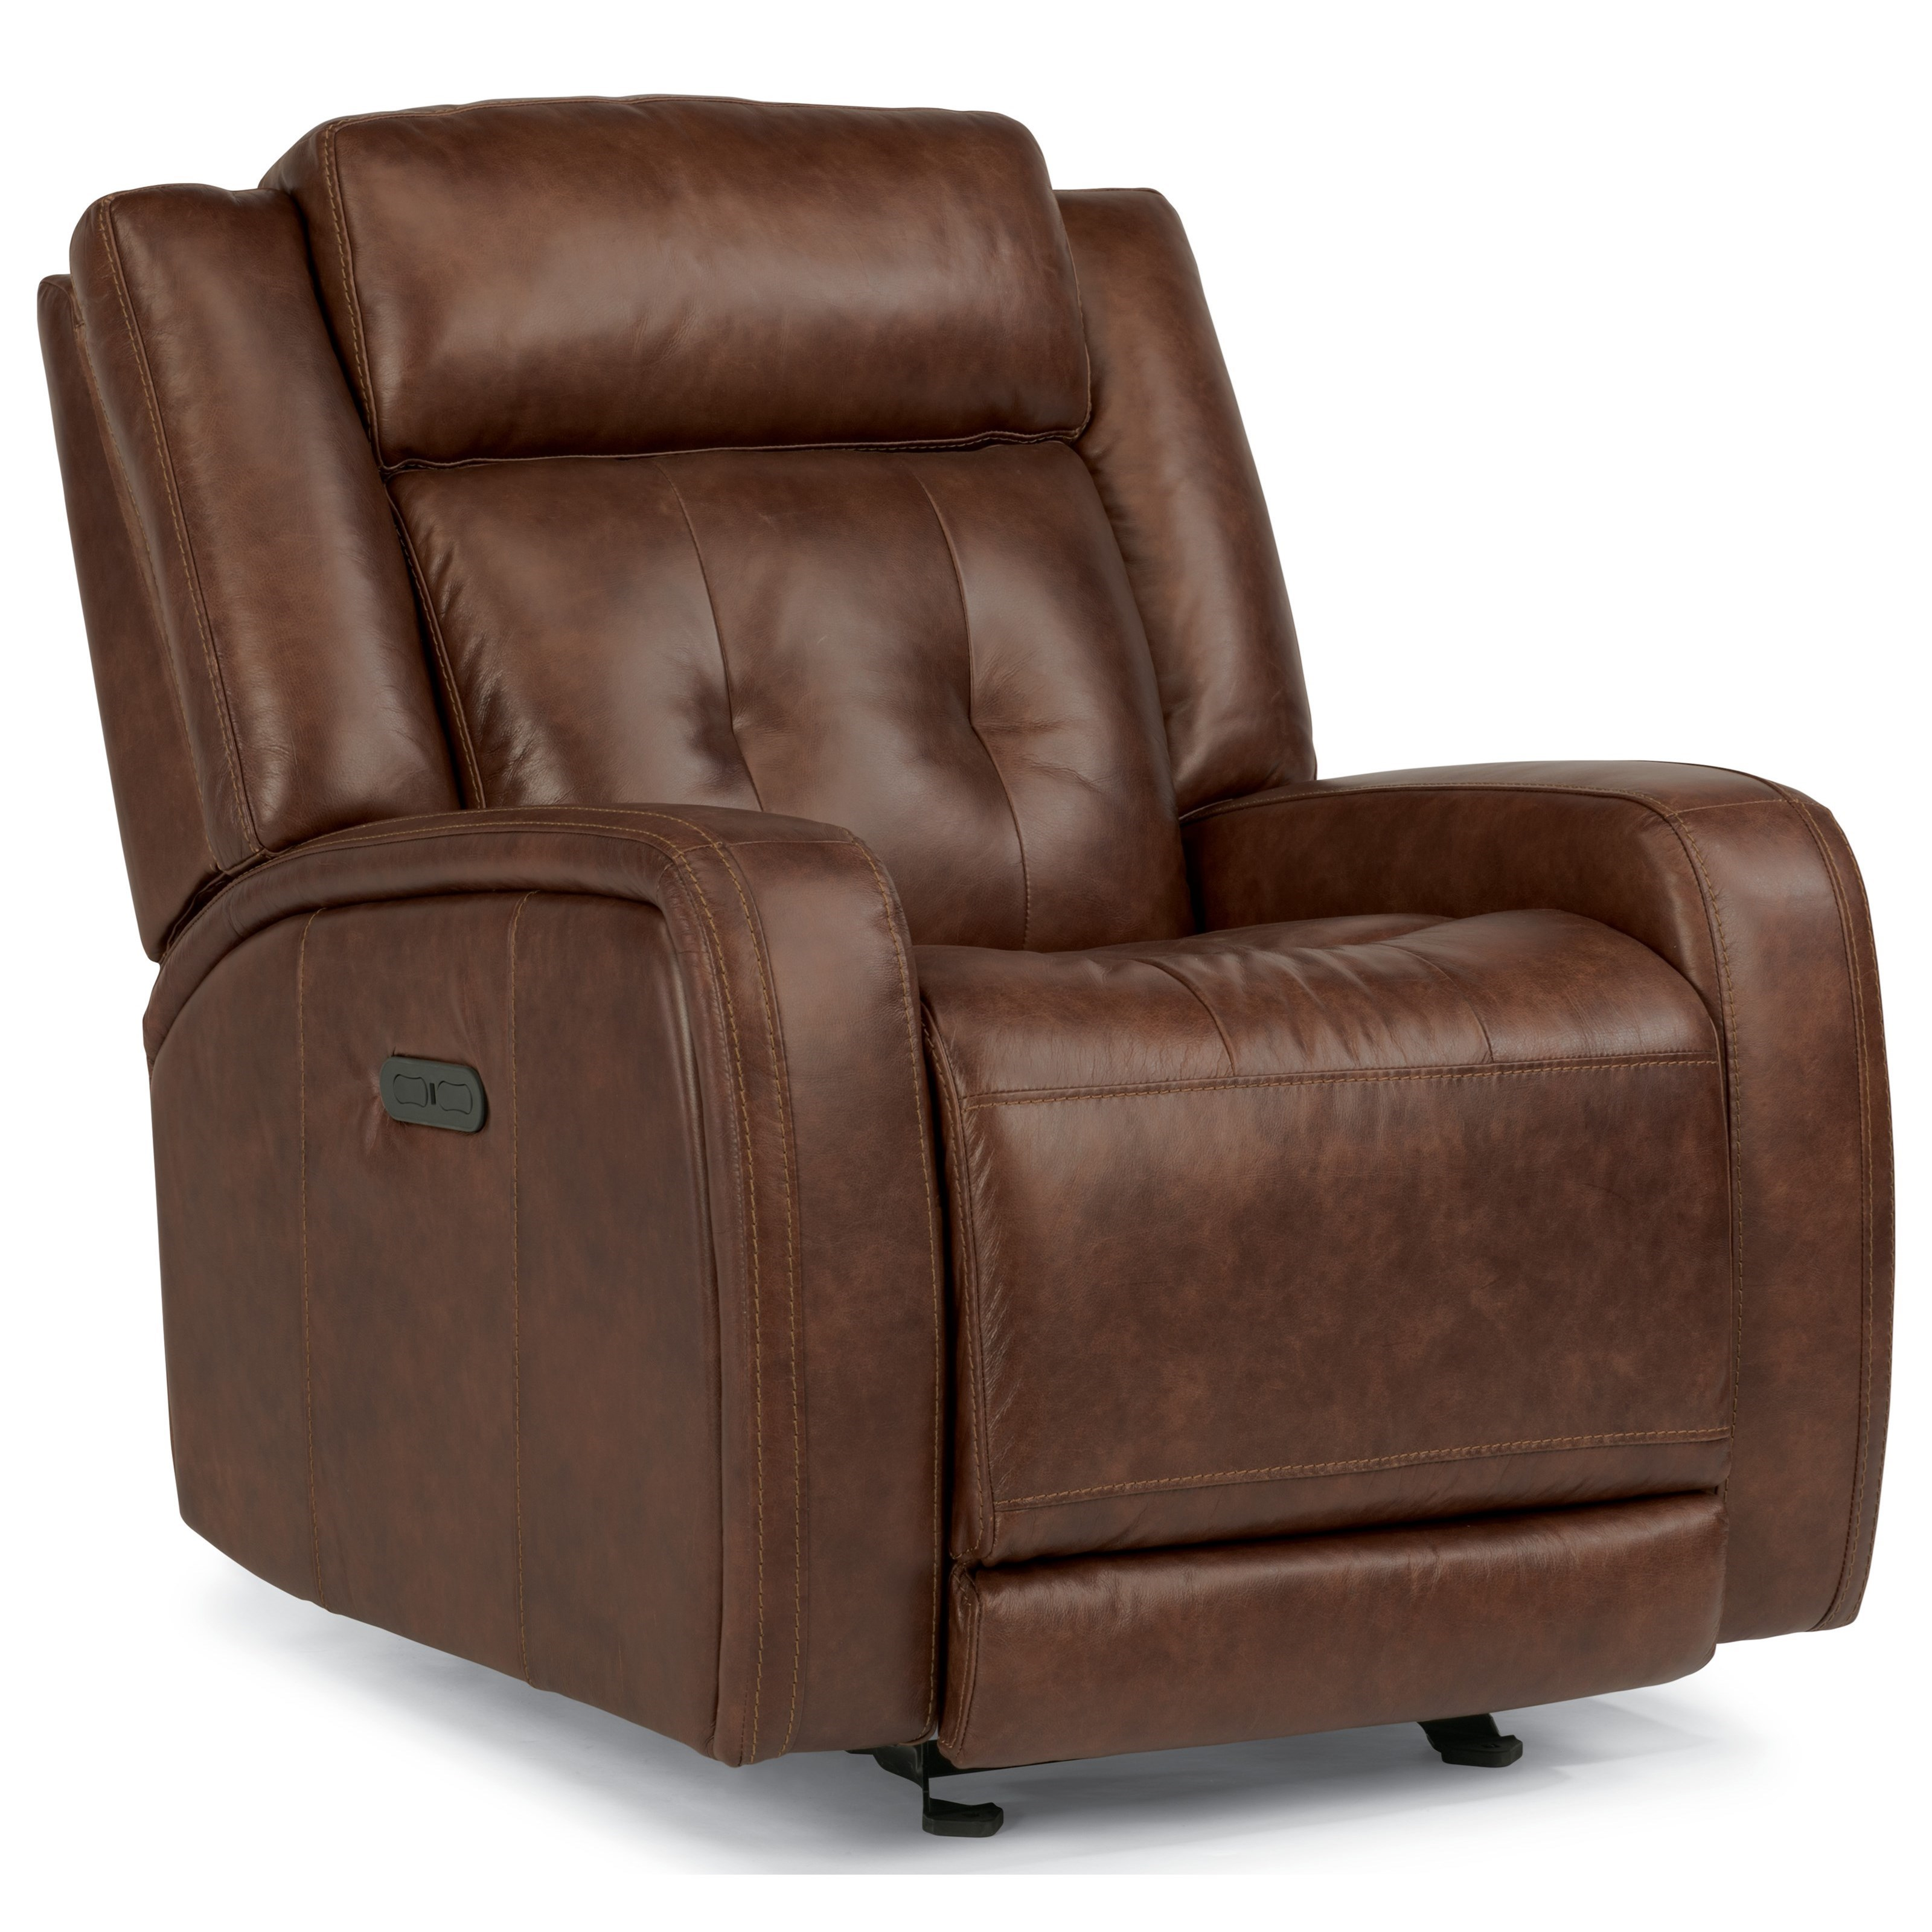 Colders Furniture Store Flexsteel Latitudes-Jude Power Gliding Recliner with ...